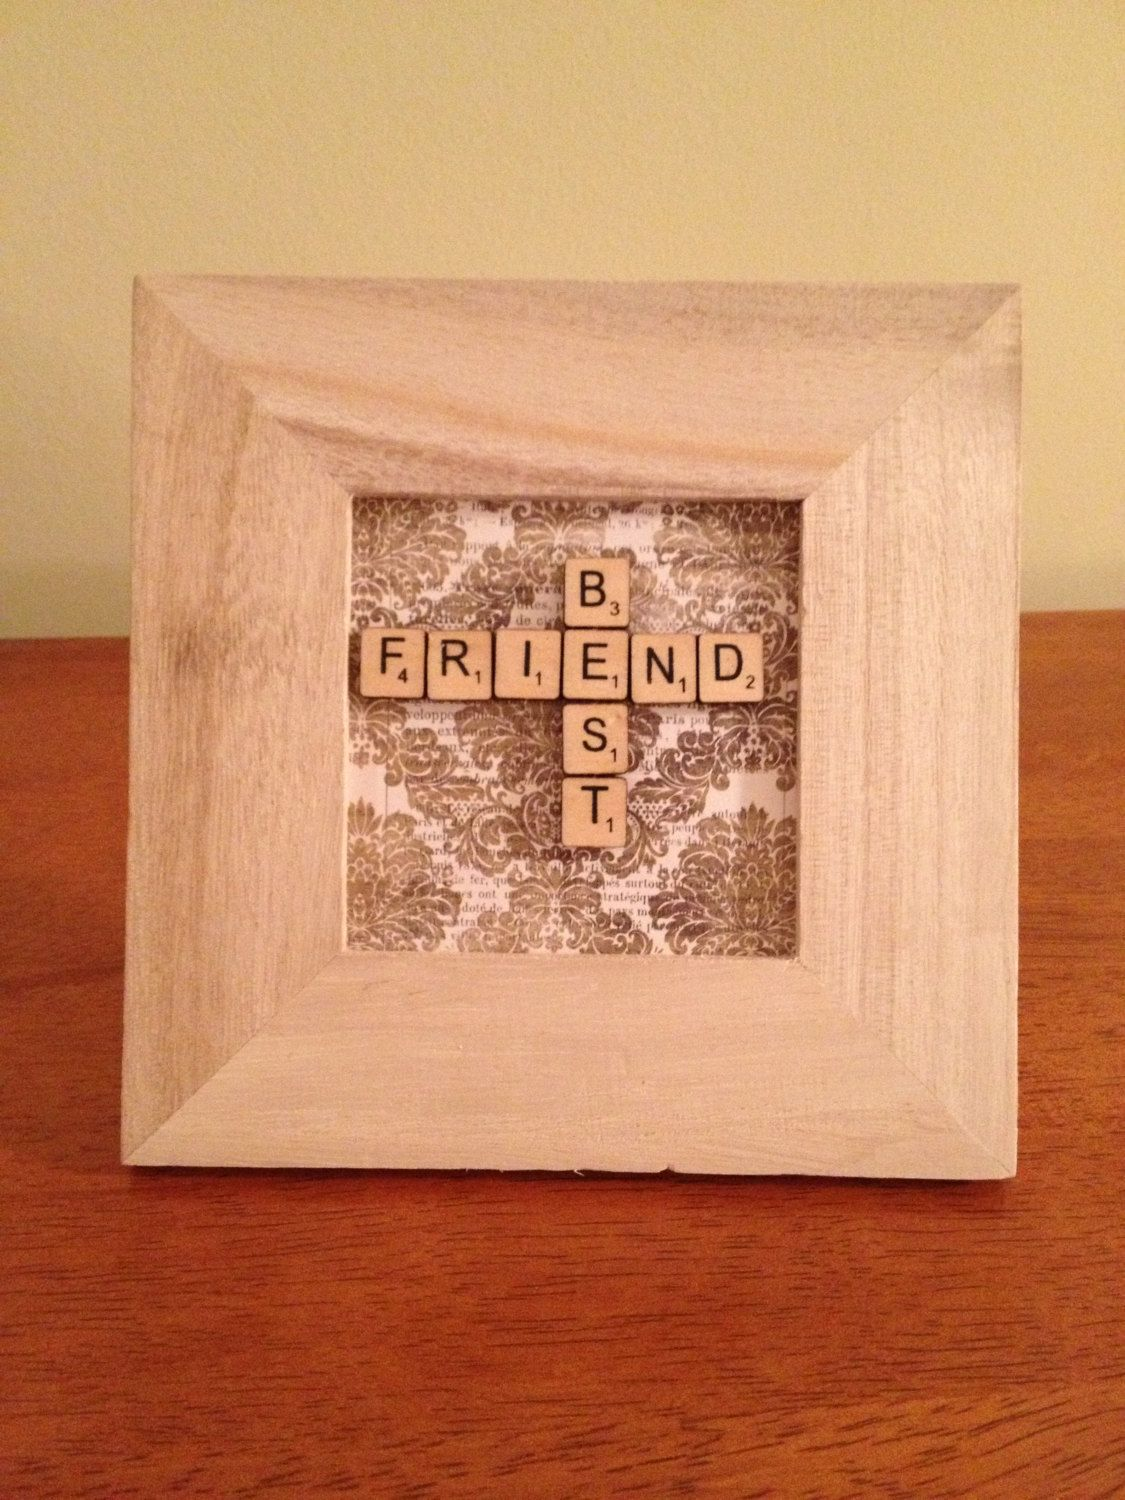 Hand crafted framed best friend miniature scrabble tiles gift you could totally do this yourself its a cute gift idea you could add your name and your best friends name to make it more personal solutioingenieria Images